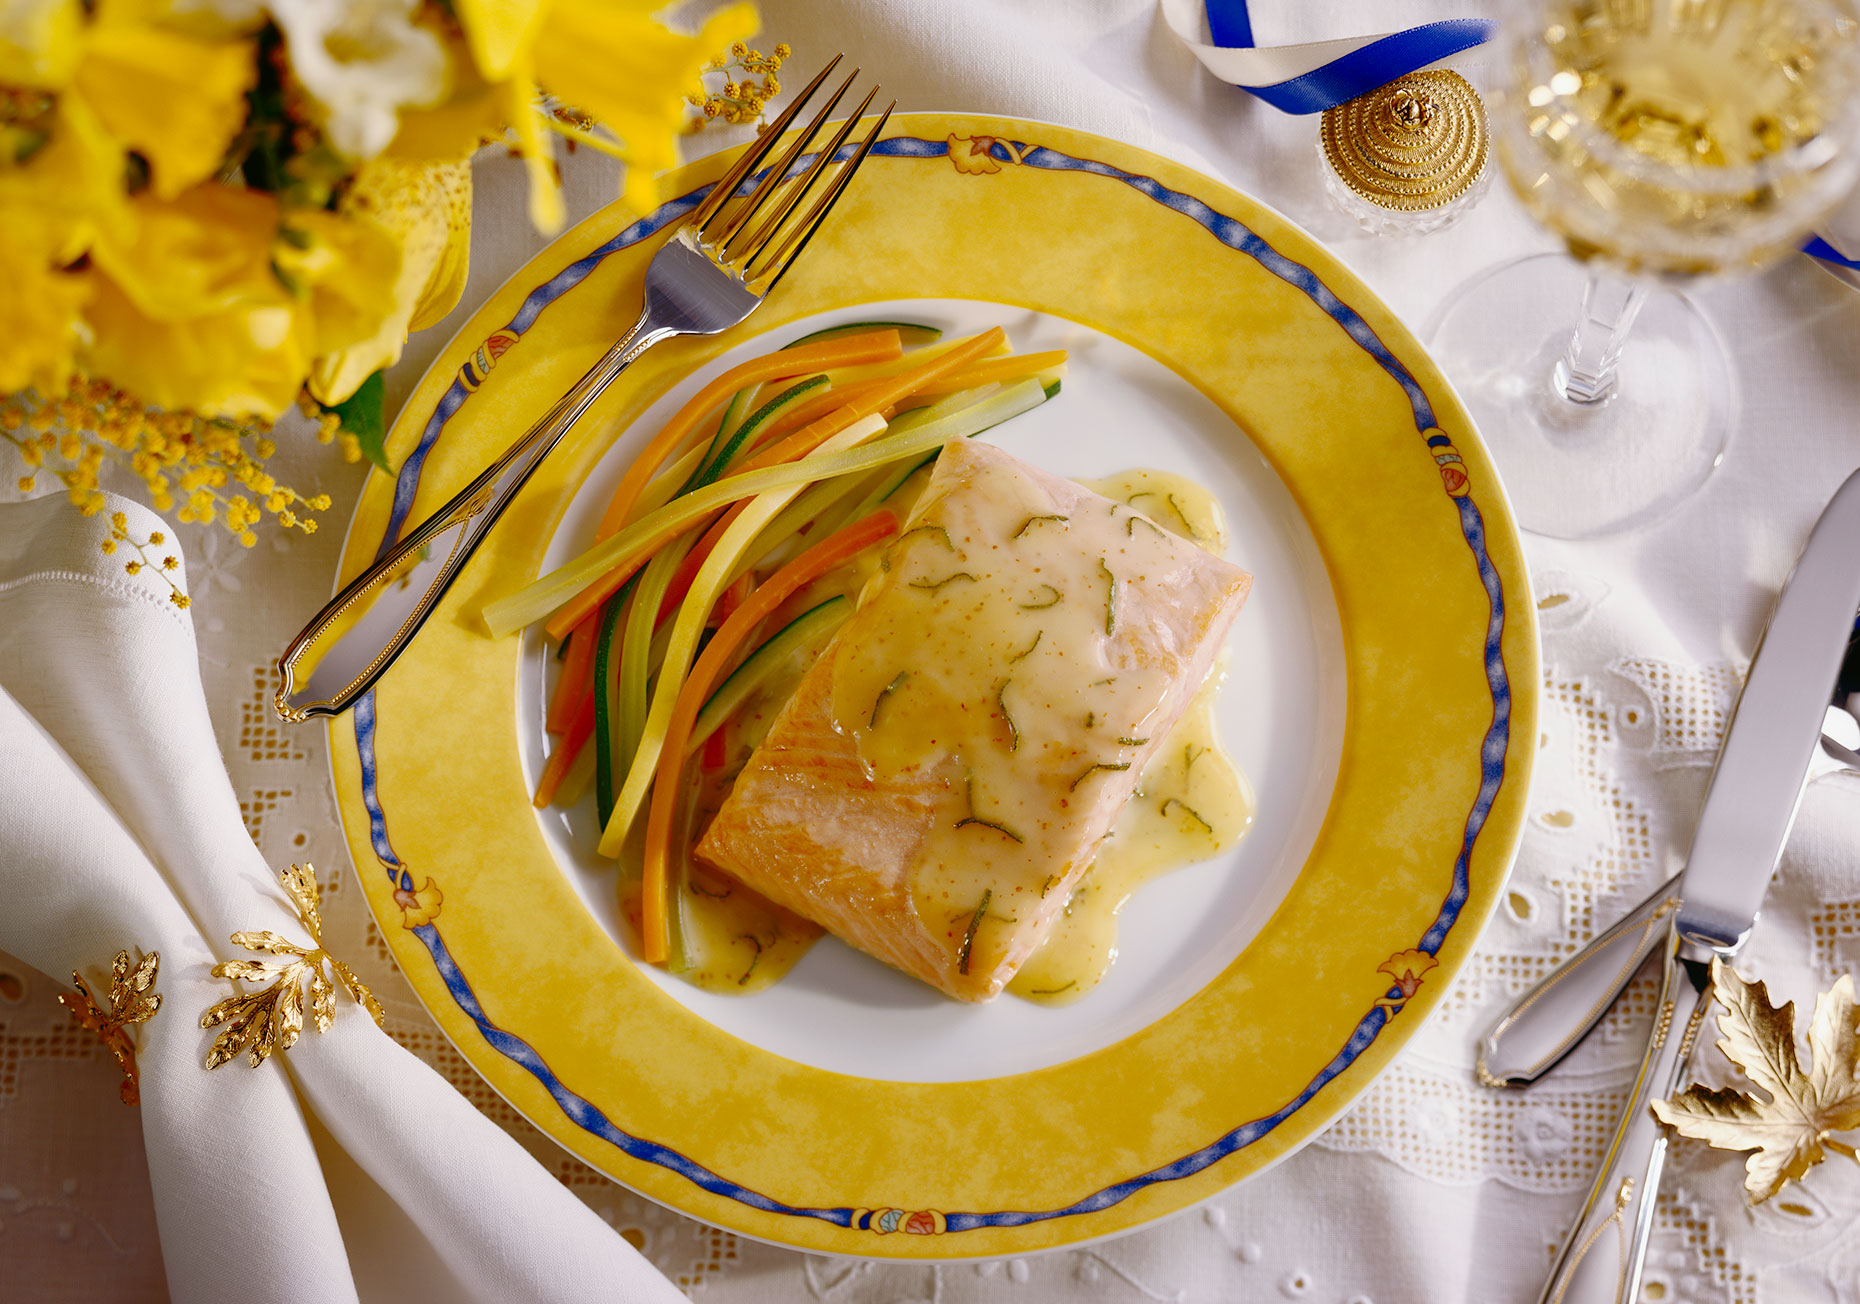 Salmon-Yellow-Plate